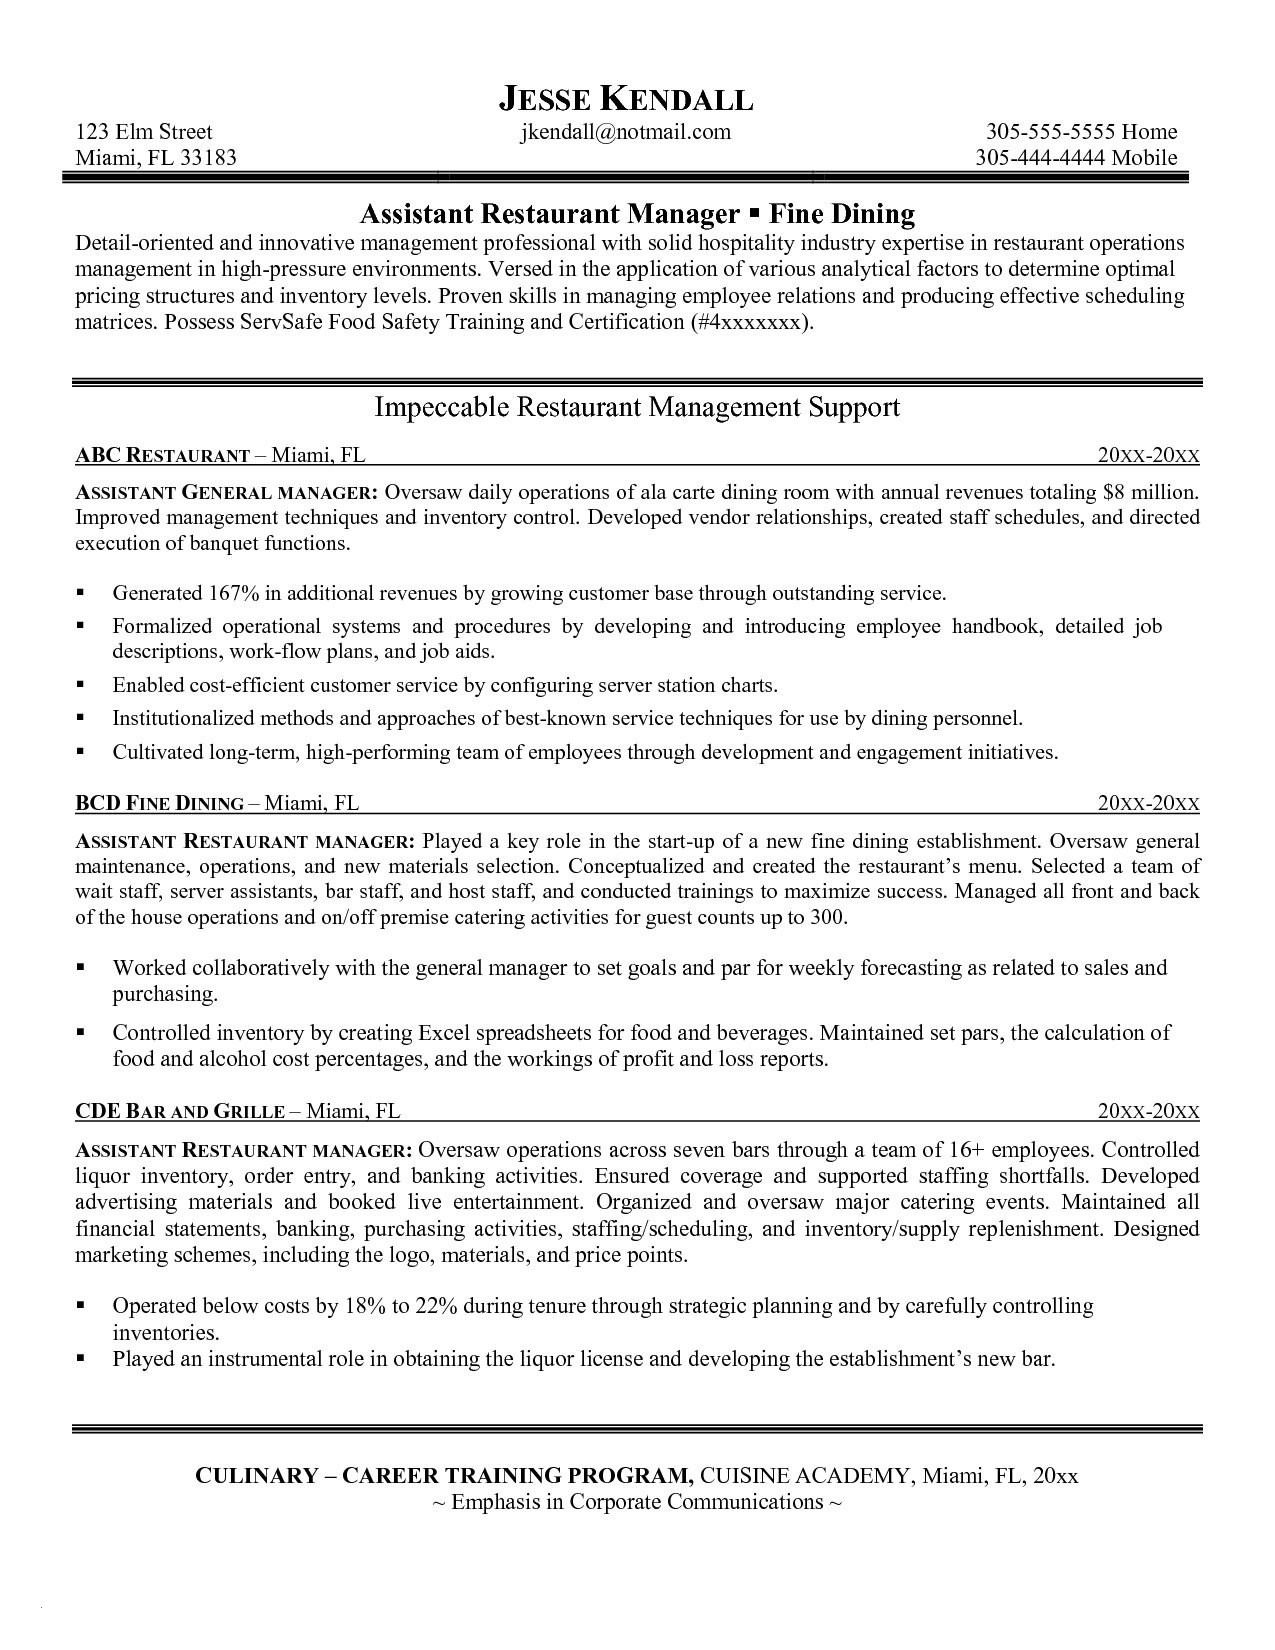 77 Best Of Collection Of Restaurant Gm Resume Examples Check More At Https Www Ourpetscrawl Restaurant Resume Resume Objective Examples Restaurant Management